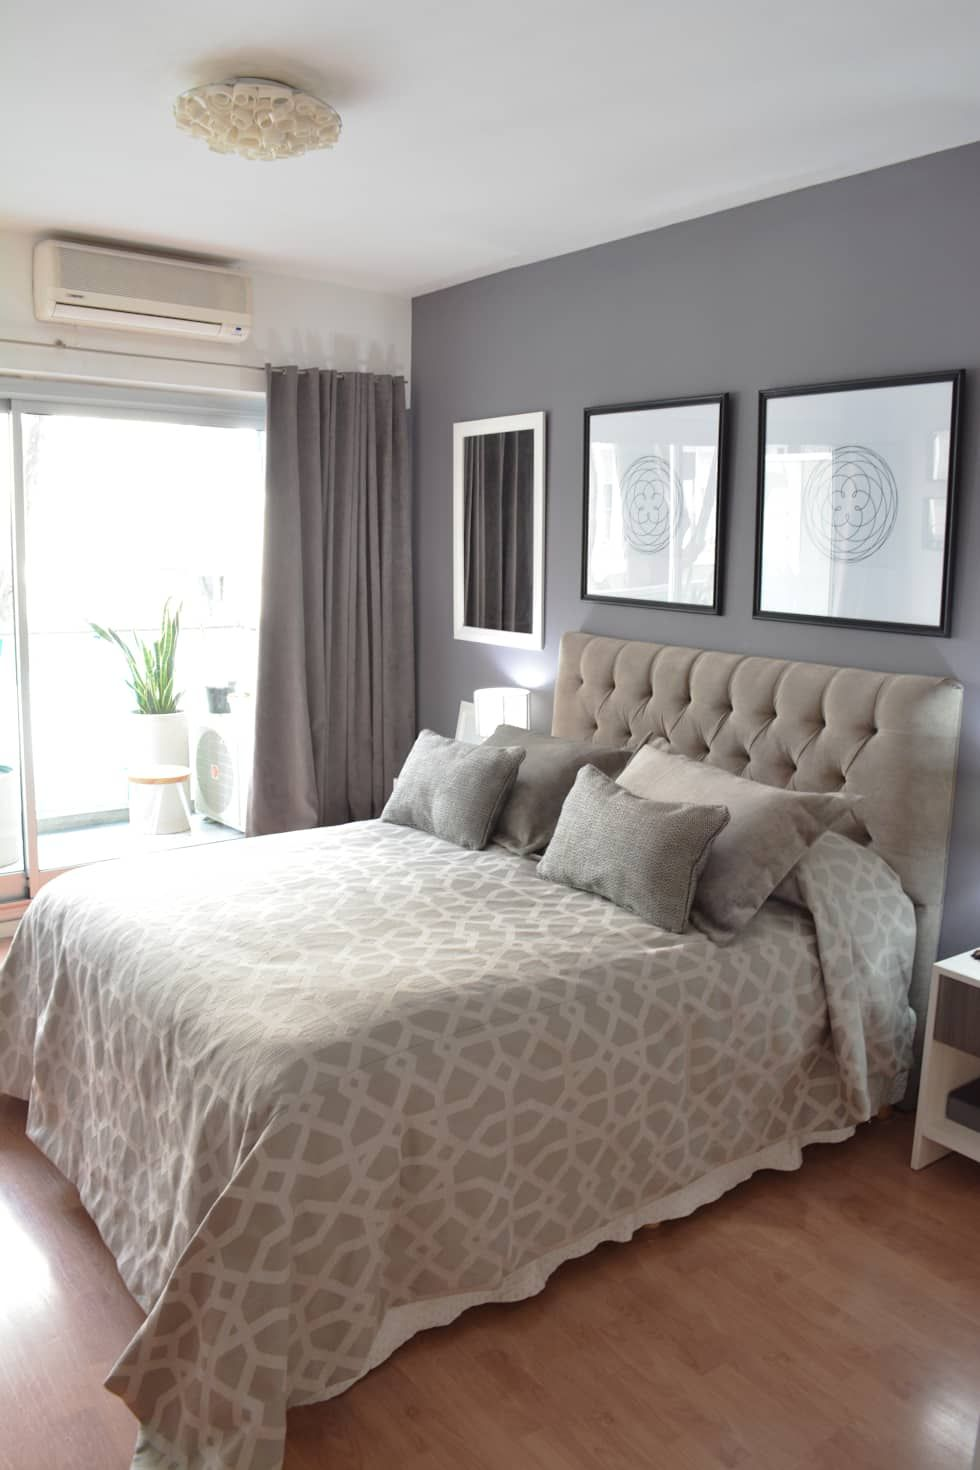 Im genes de decoraci n y dise o de interiores bedrooms for Decoracion de habitaciones